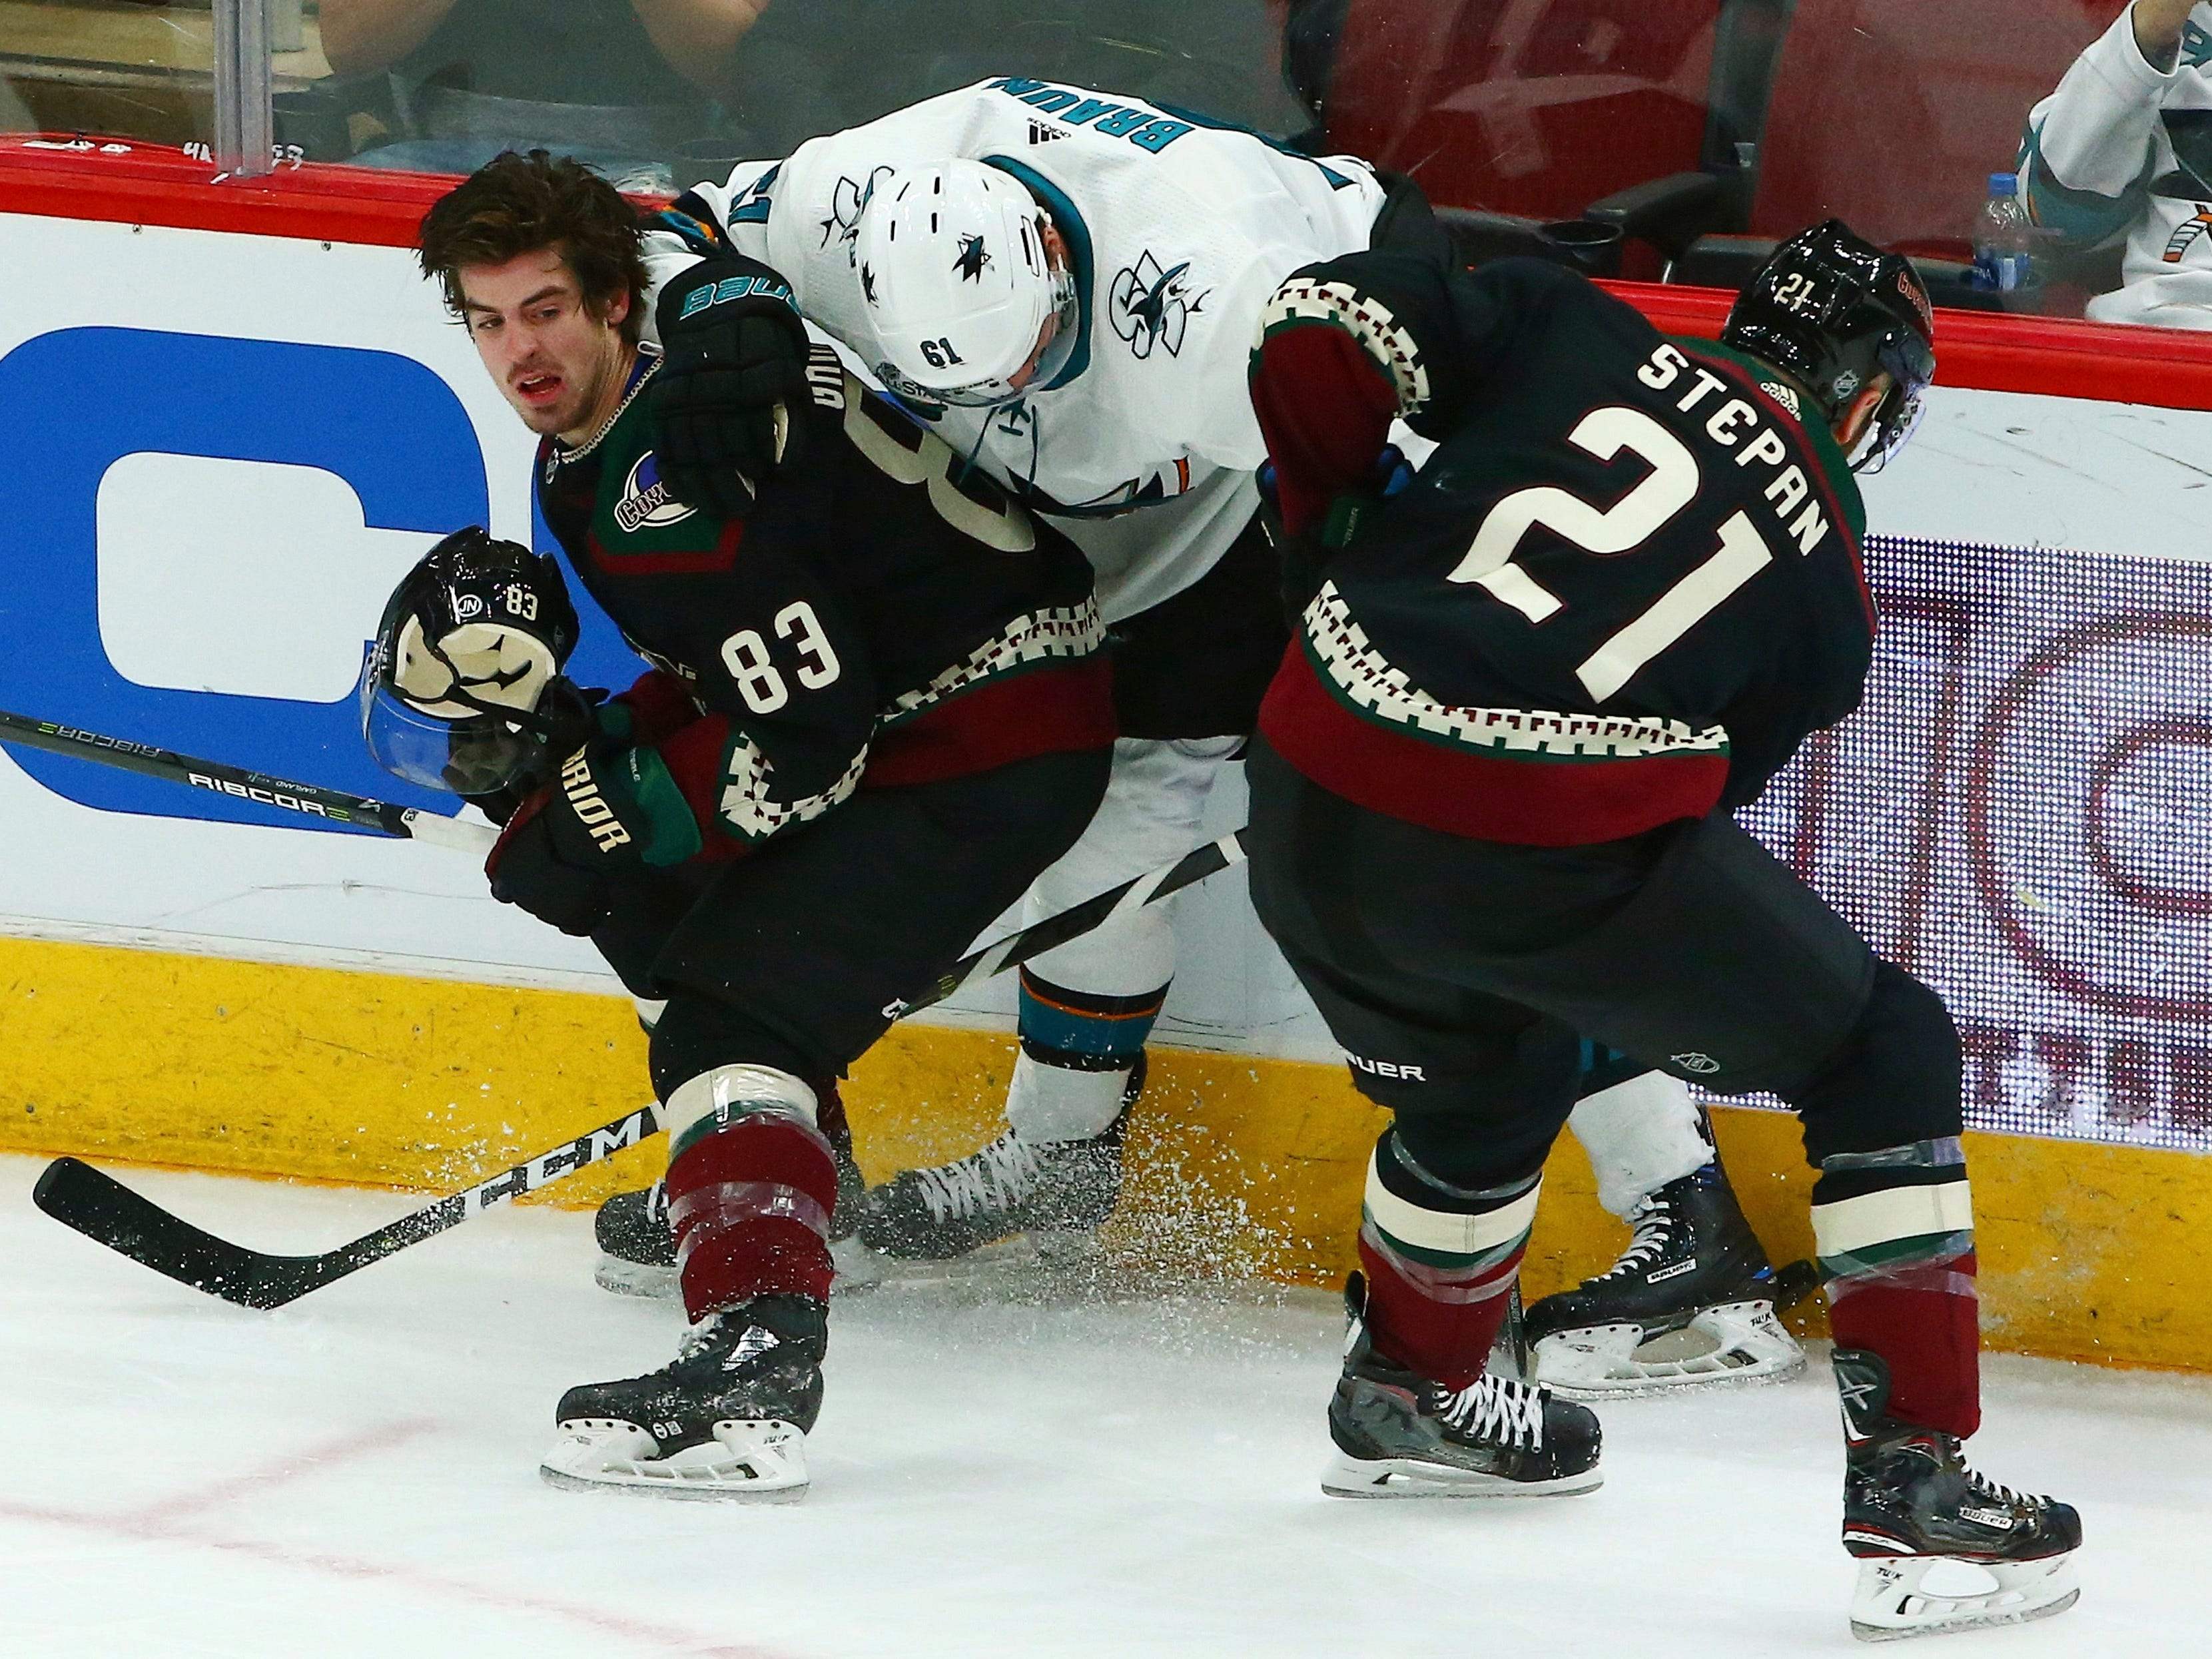 Arizona Coyotes right wing Conor Garland (83) loses his helmet as San Jose Sharks defenseman Justin Braun (61) and Coyotes center Derek Stepan (21) battle for the puck during the third period of an NHL hockey game, Saturday, Dec. 8, 2018, in Phoenix. The Sharks defeated the Coyotes 5-3.